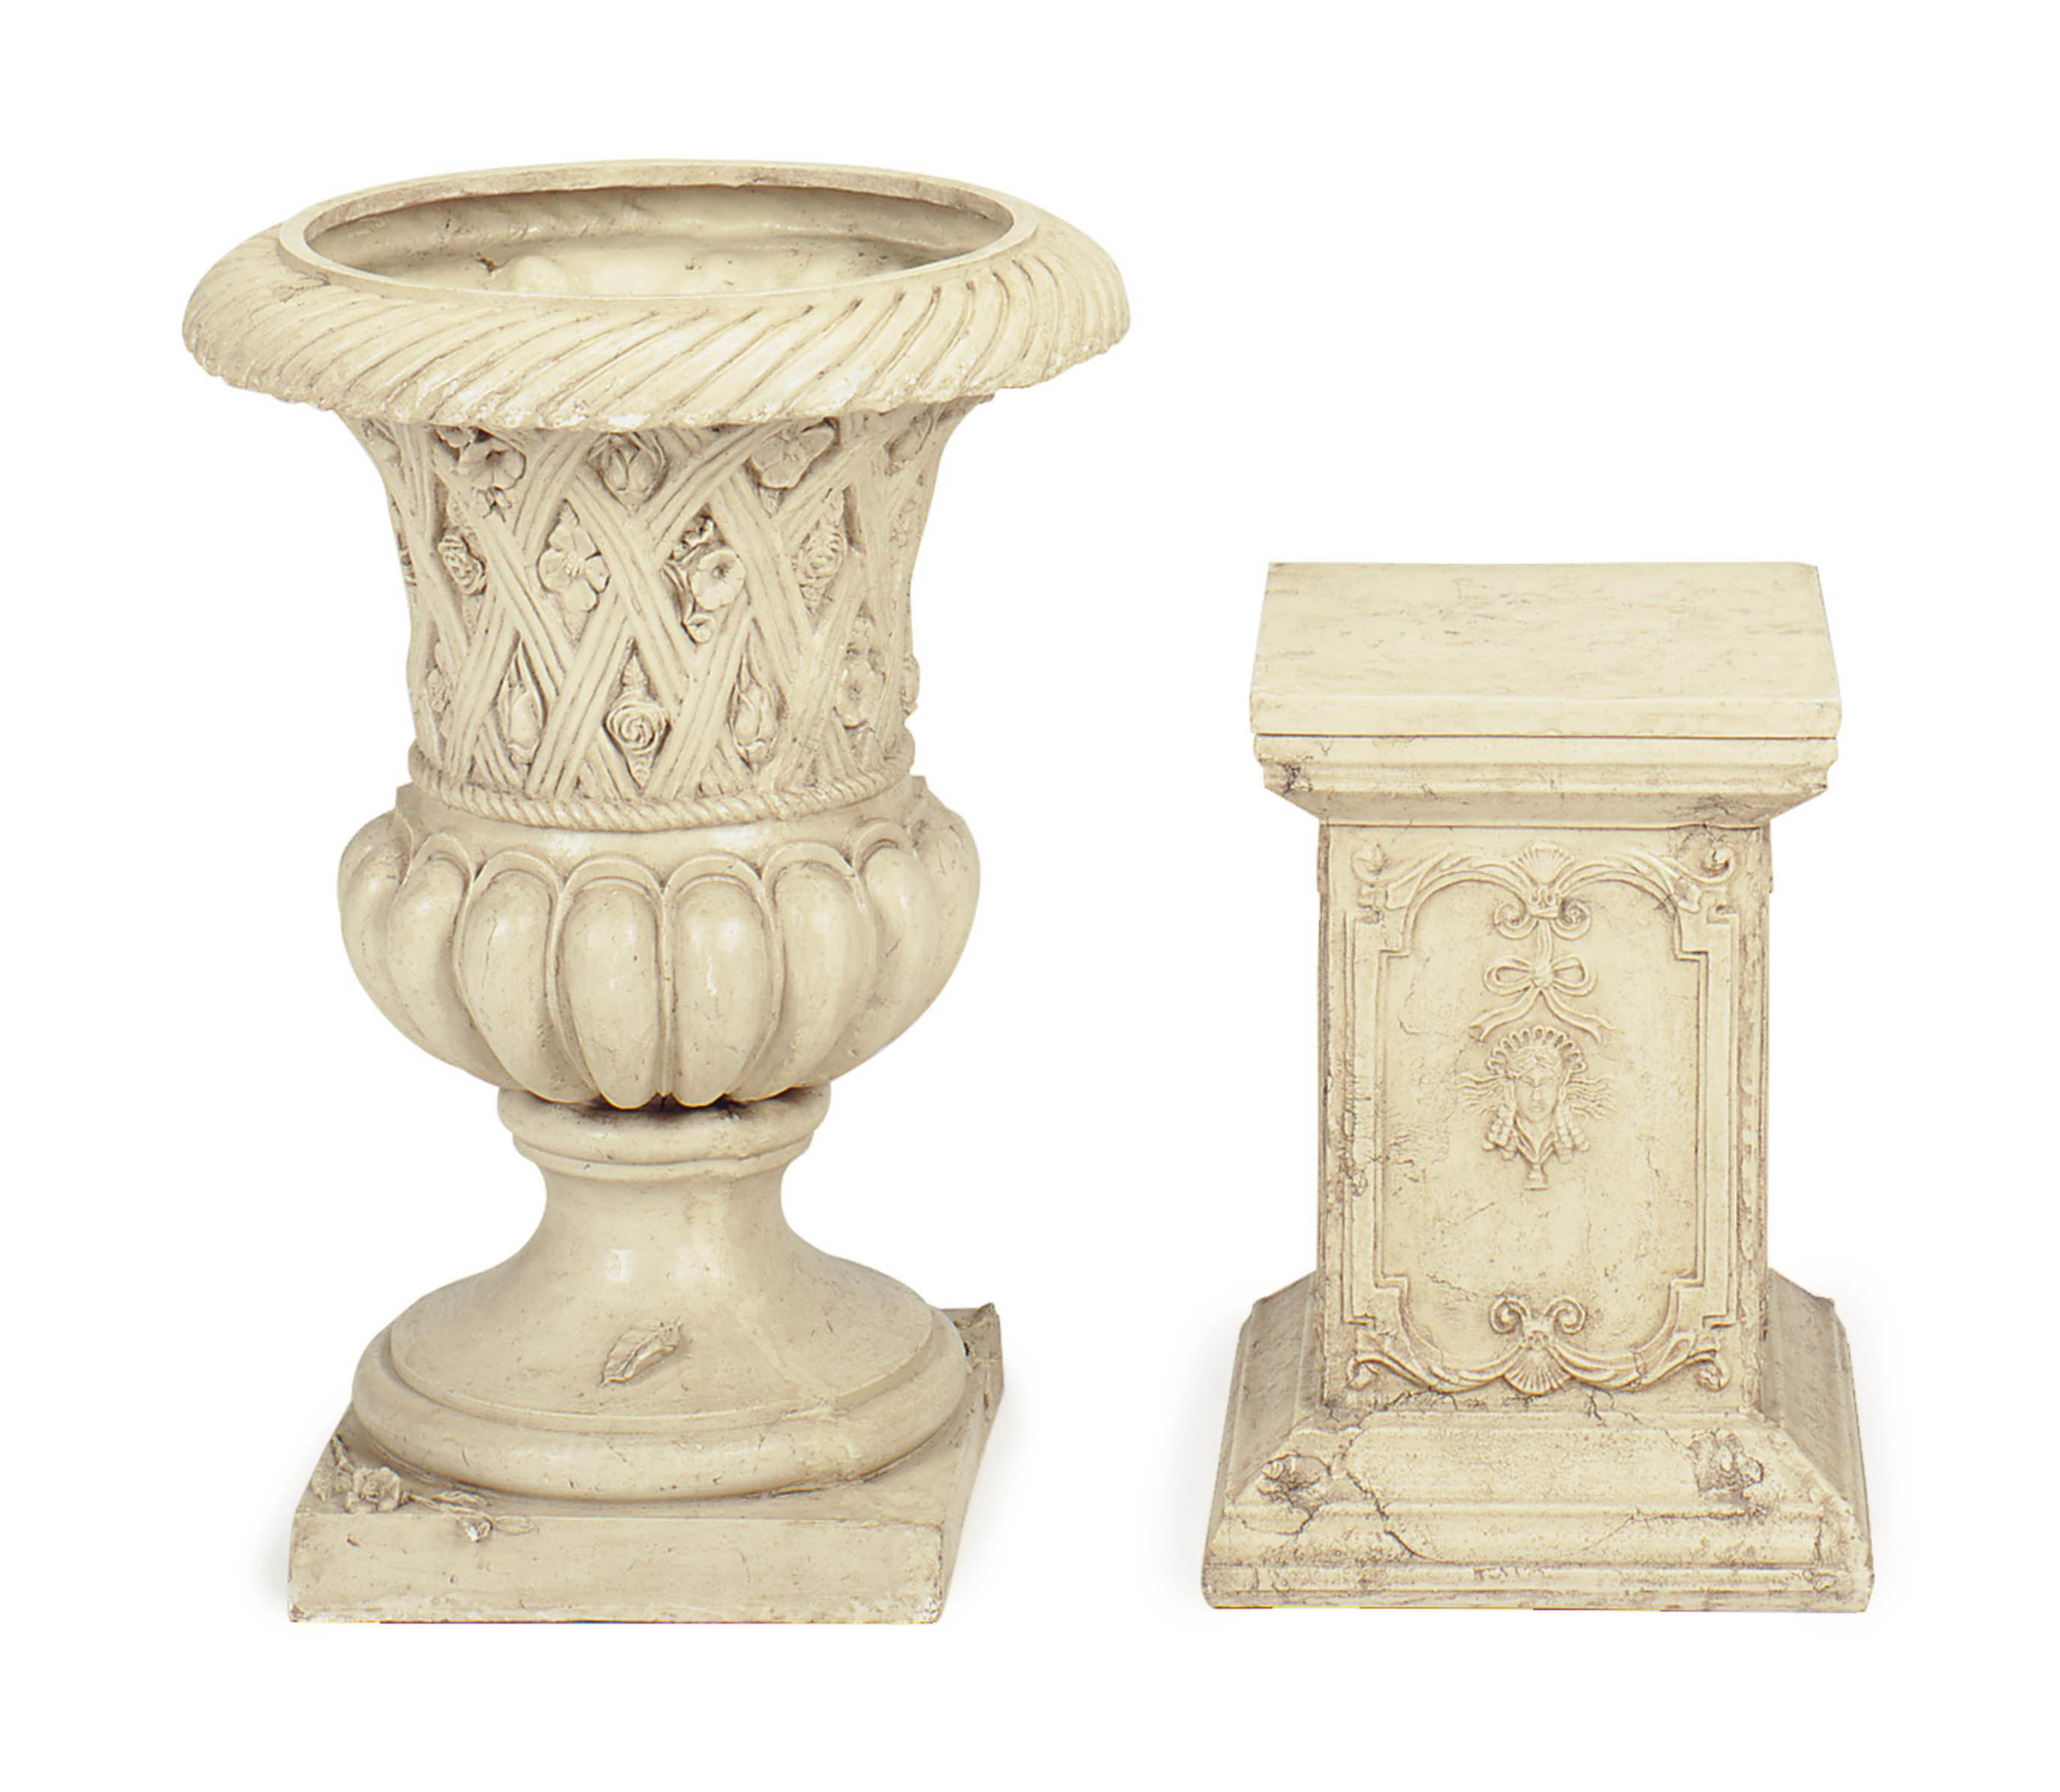 A Set Of Three Faux Marble Compostition Garden Pedestals And An Urn